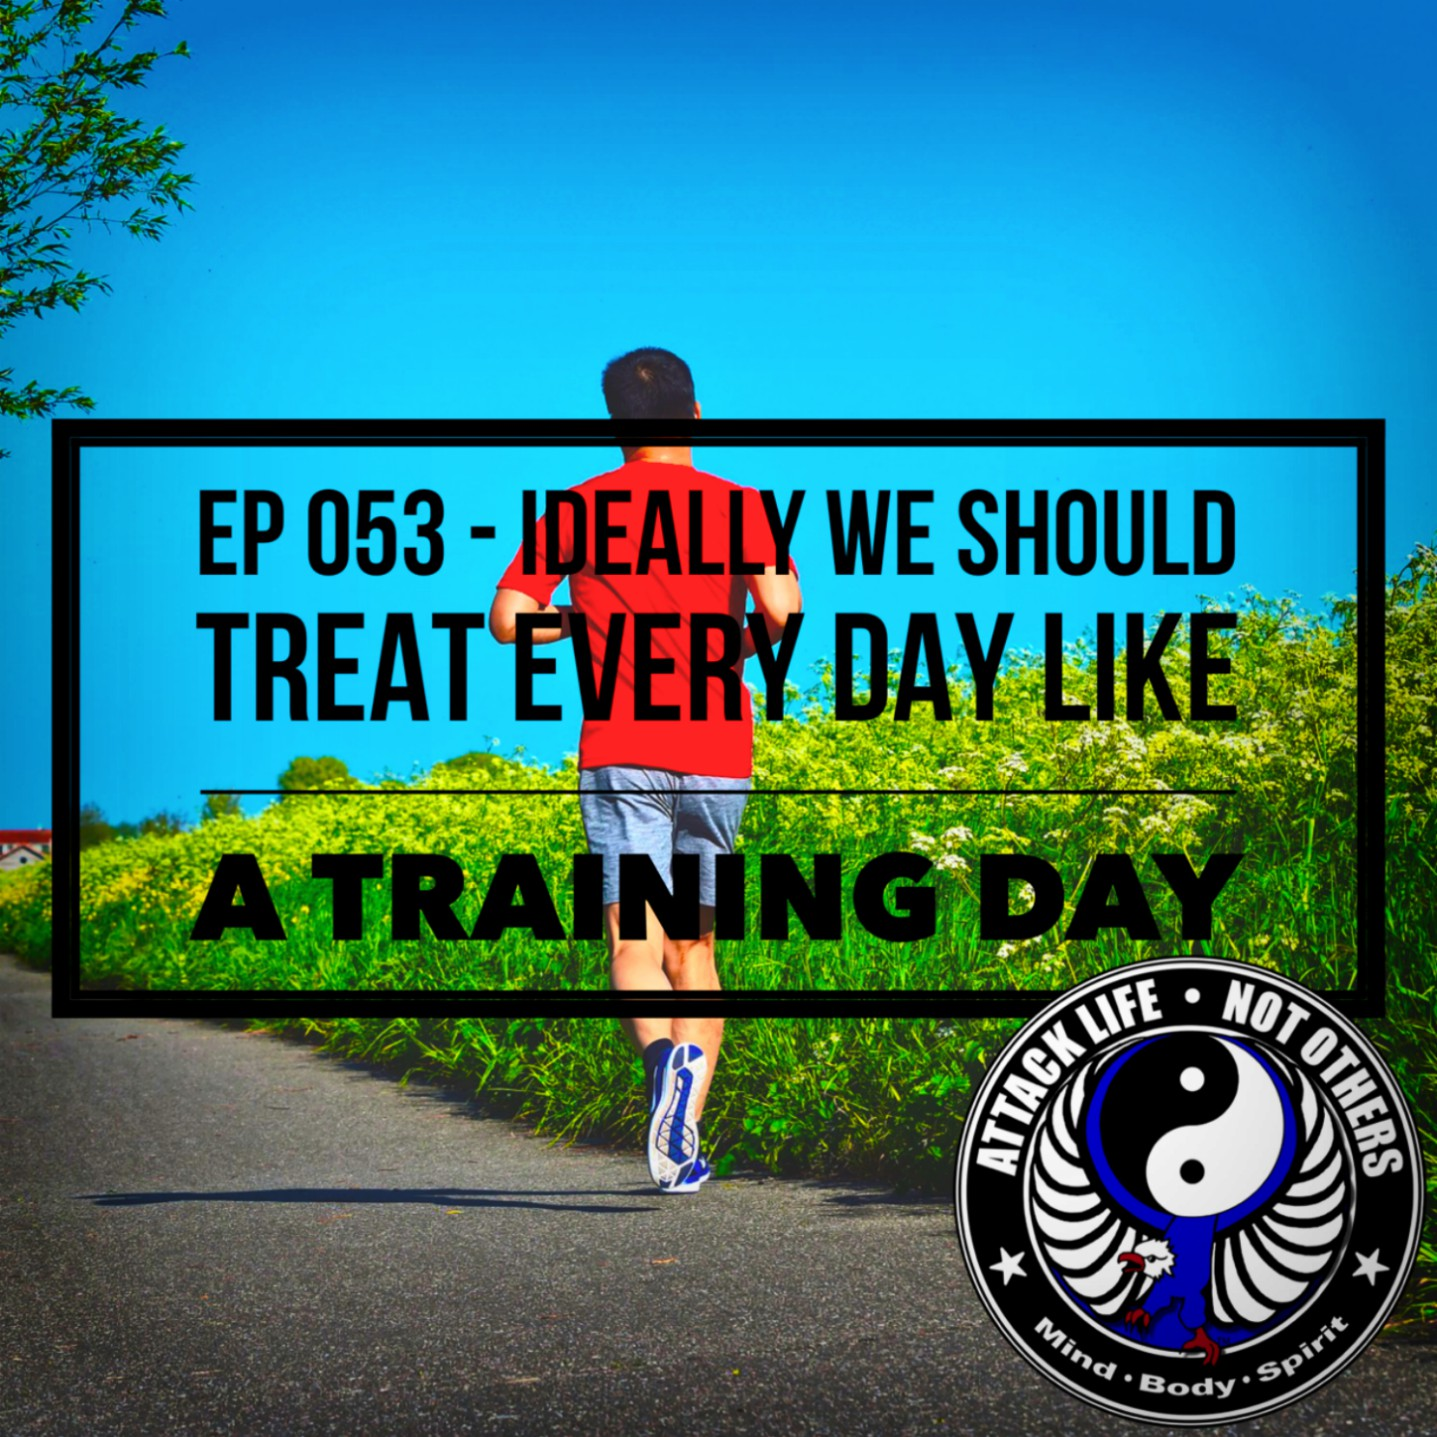 Artwork for Ep 053 - Ideally We Should Treat Every Day Like a Training Day